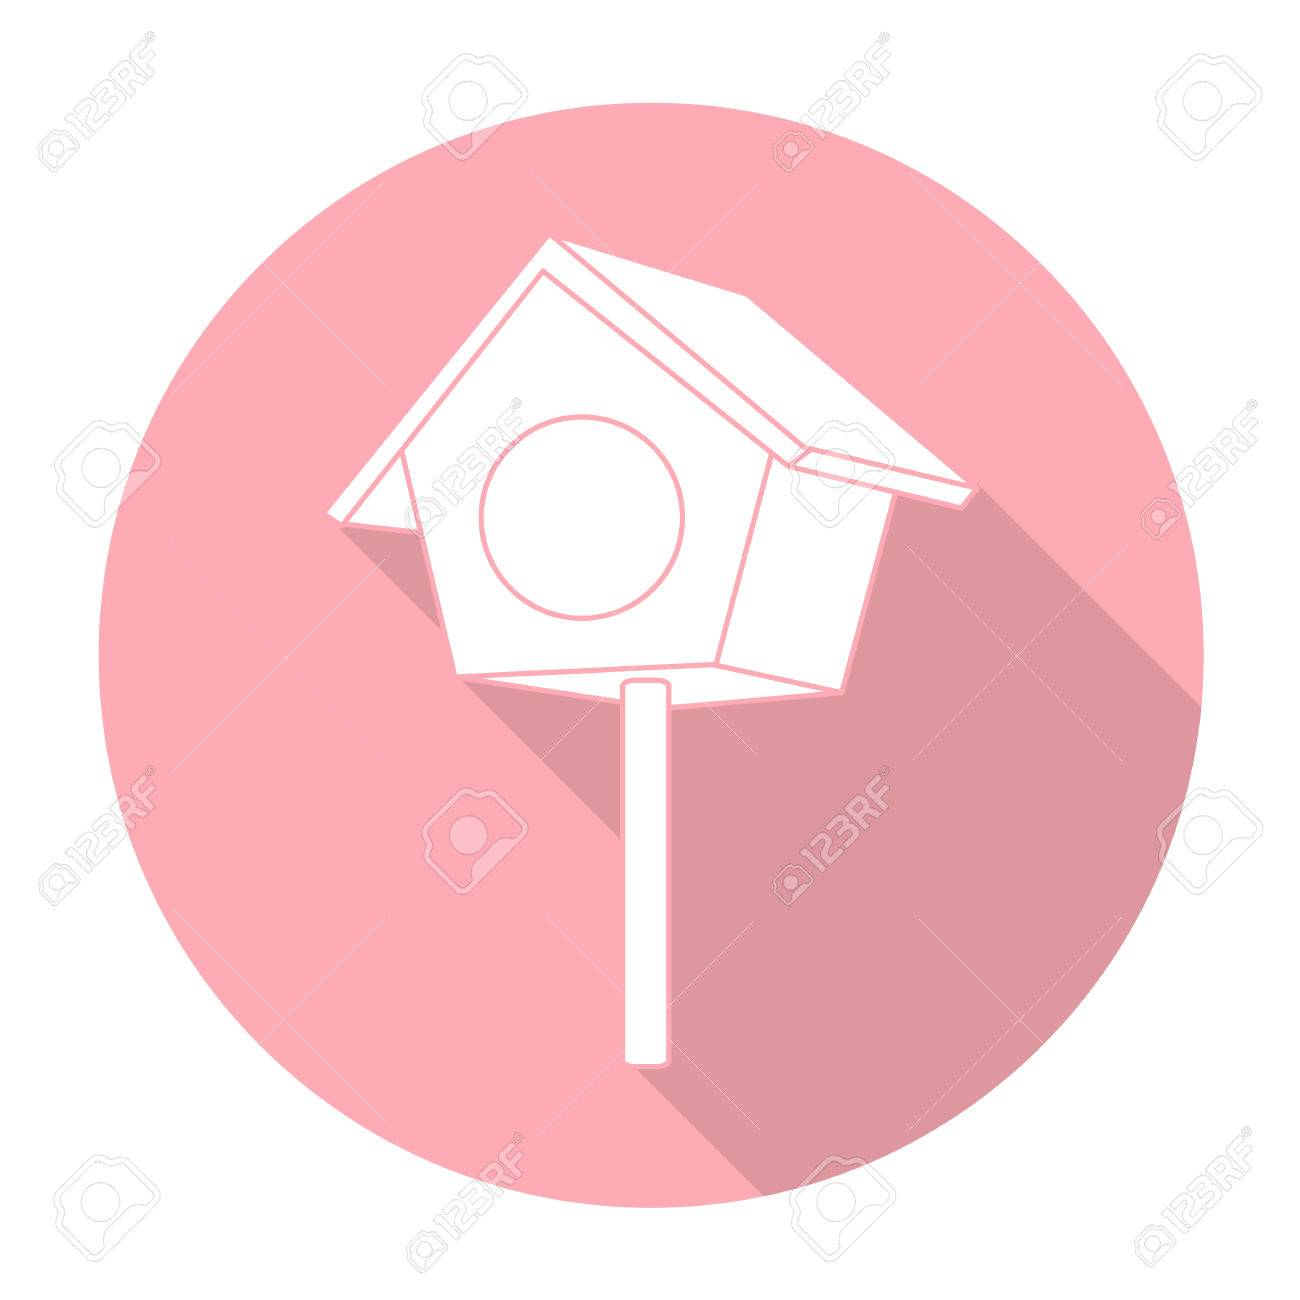 White Vector Bird House On Color Circle Background. Royalty Free ...